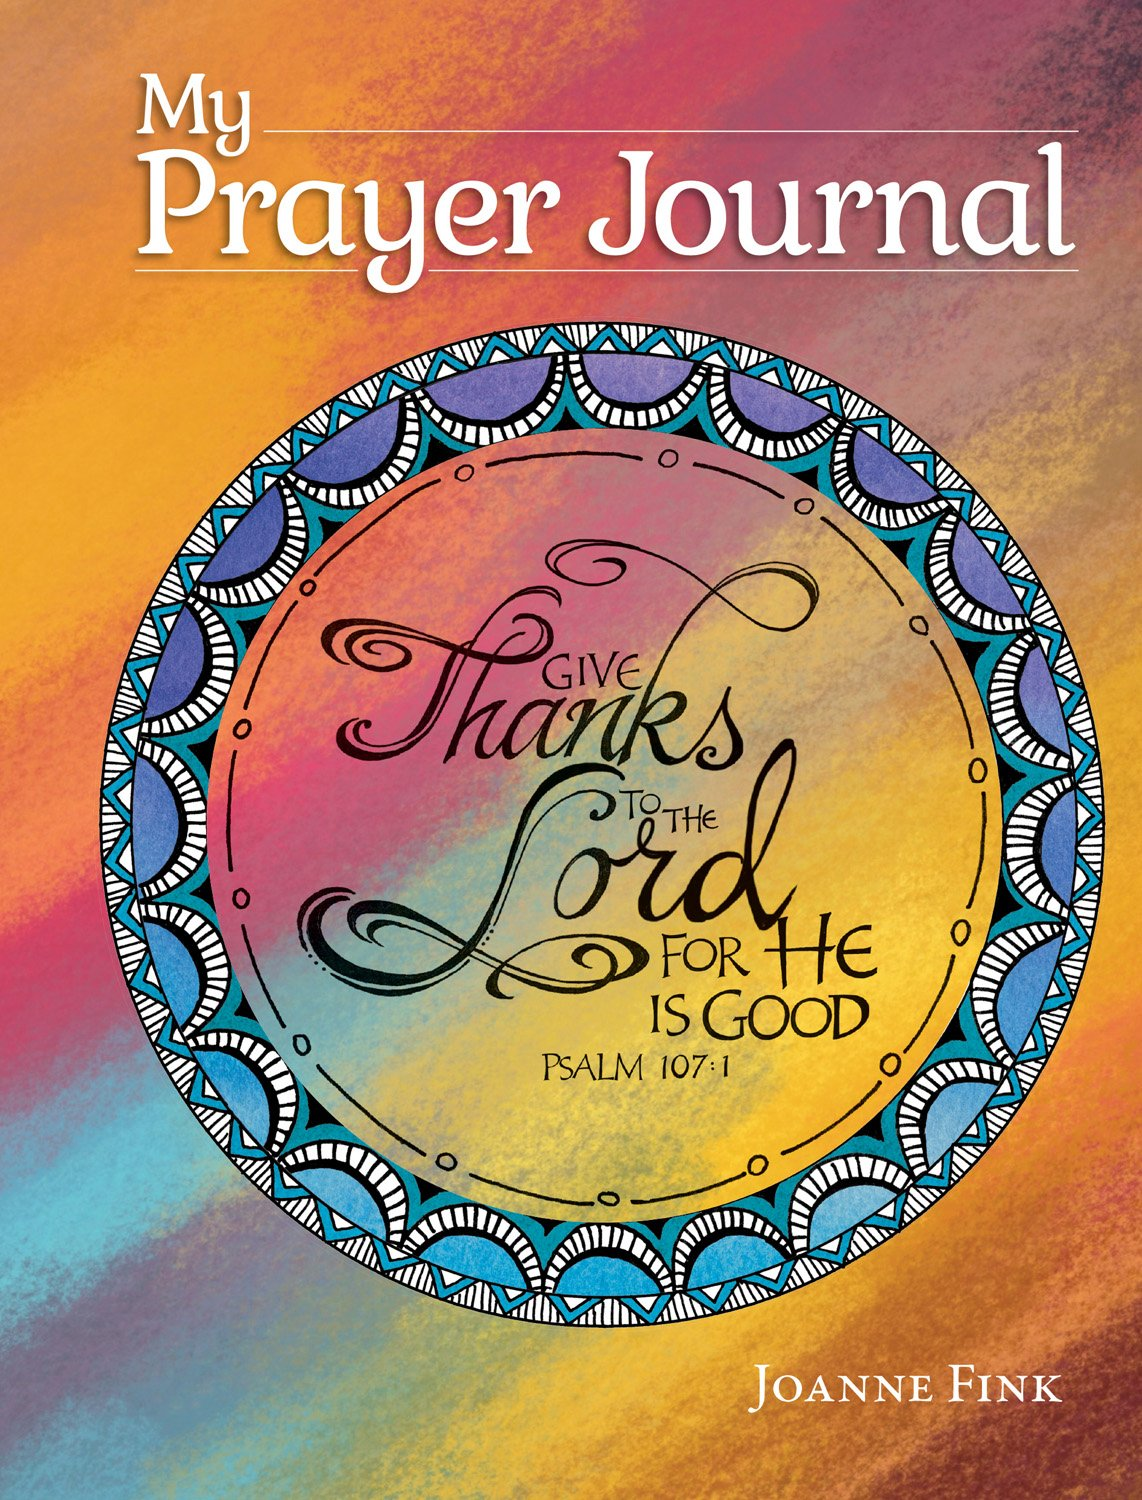 My Prayer Journal (Quiet Fox Designs) Inspiring, Faith-Based Guided Journal; Thoughtful Questions, Color Illustrations, Uplifting Thoughts, and Scripture Passages; Lined Pages for Journaling PDF